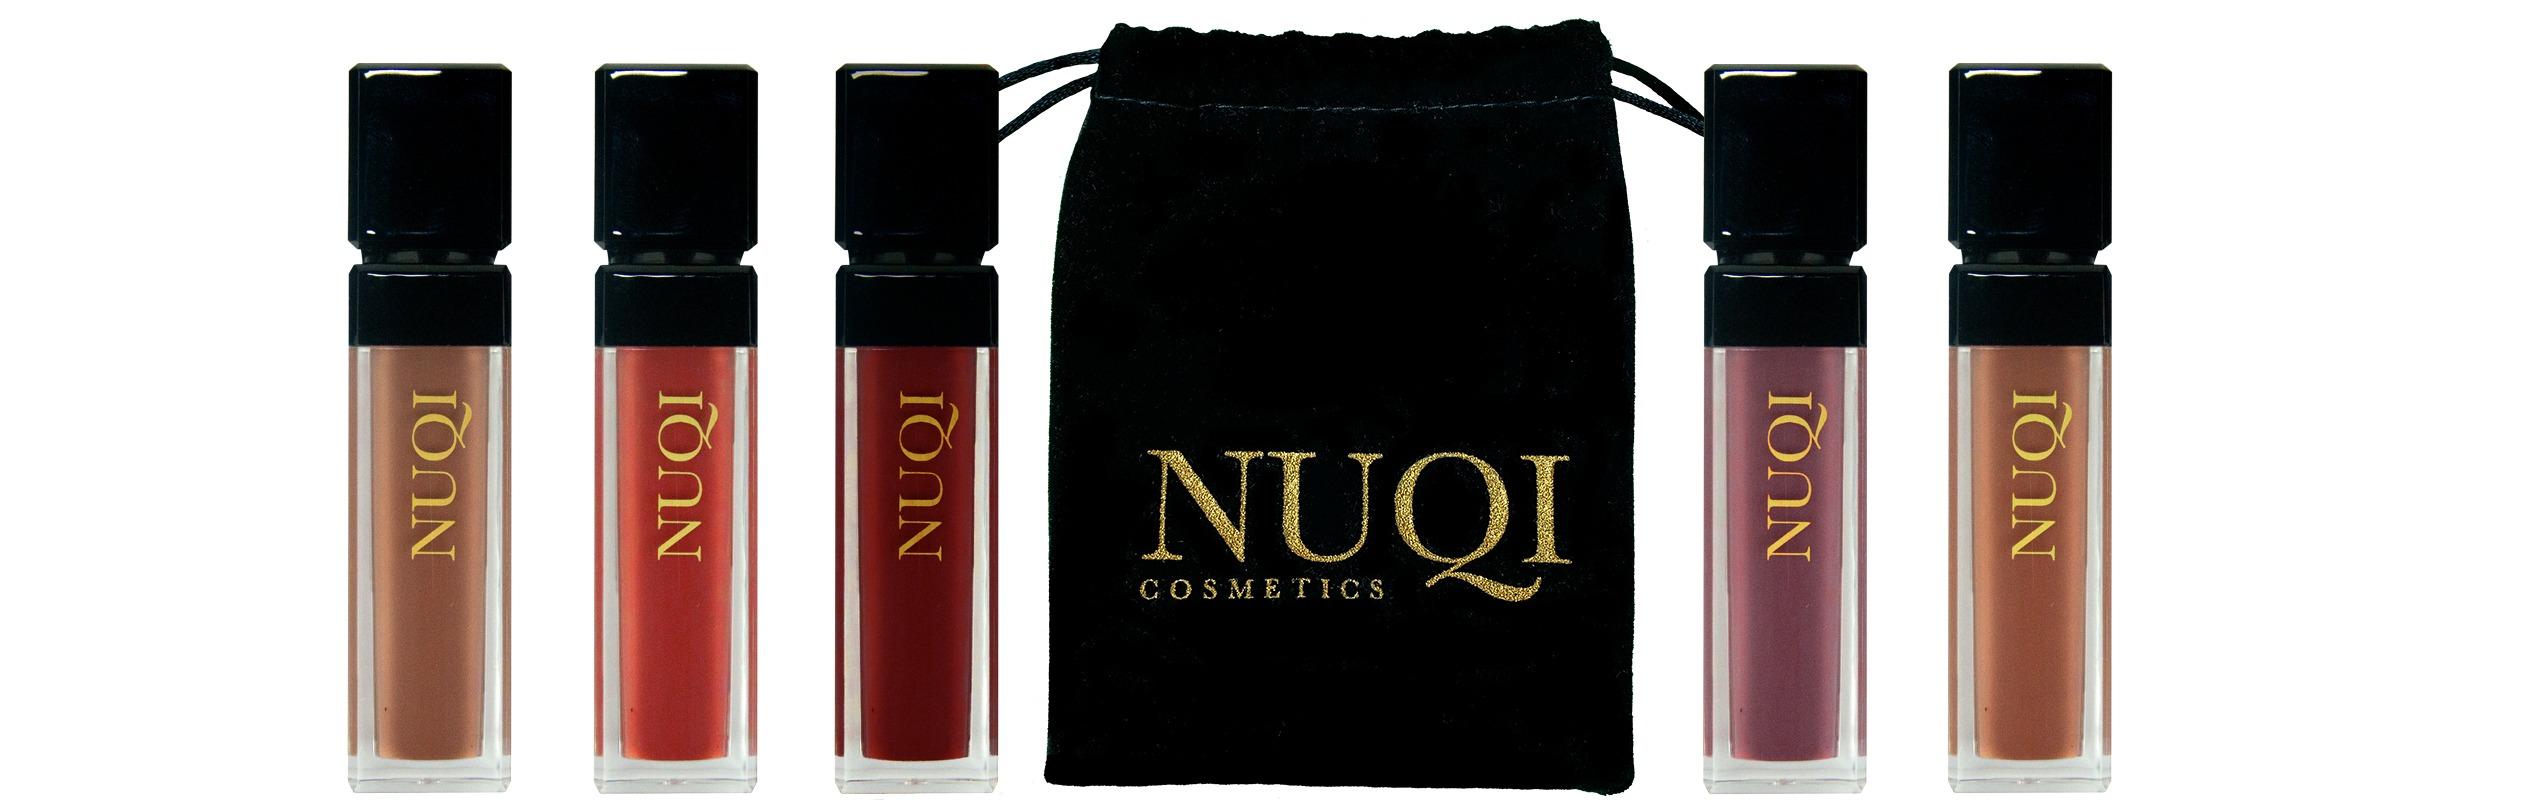 nuqi-large-pouch-items